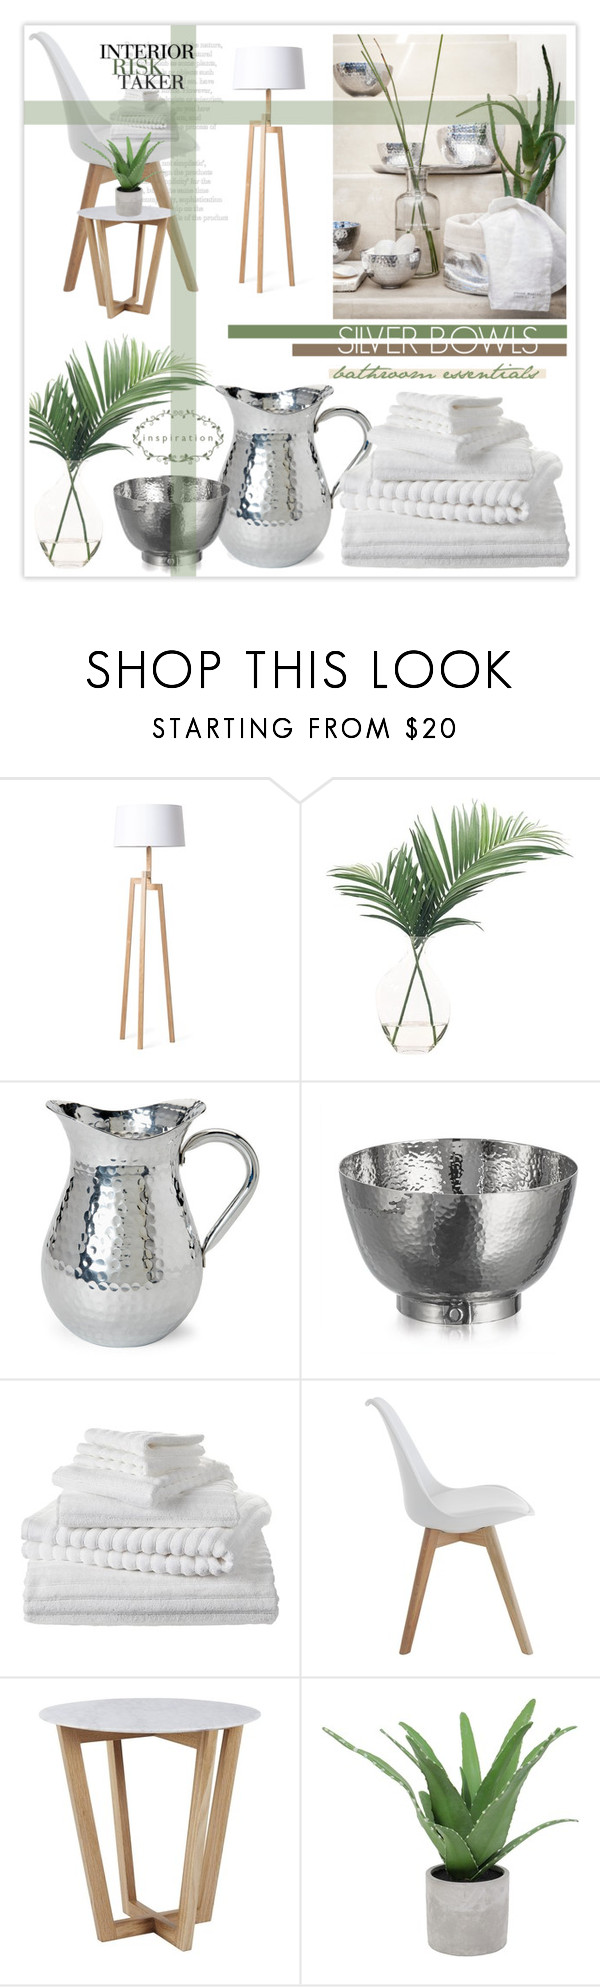 """Slate & Silver - Bathroom"" by nonniekiss ❤ liked on Polyvore featuring interior, interiors, interior design, home, home decor, interior decorating, H&M, Rove Concepts, NDI and Michael Aram"